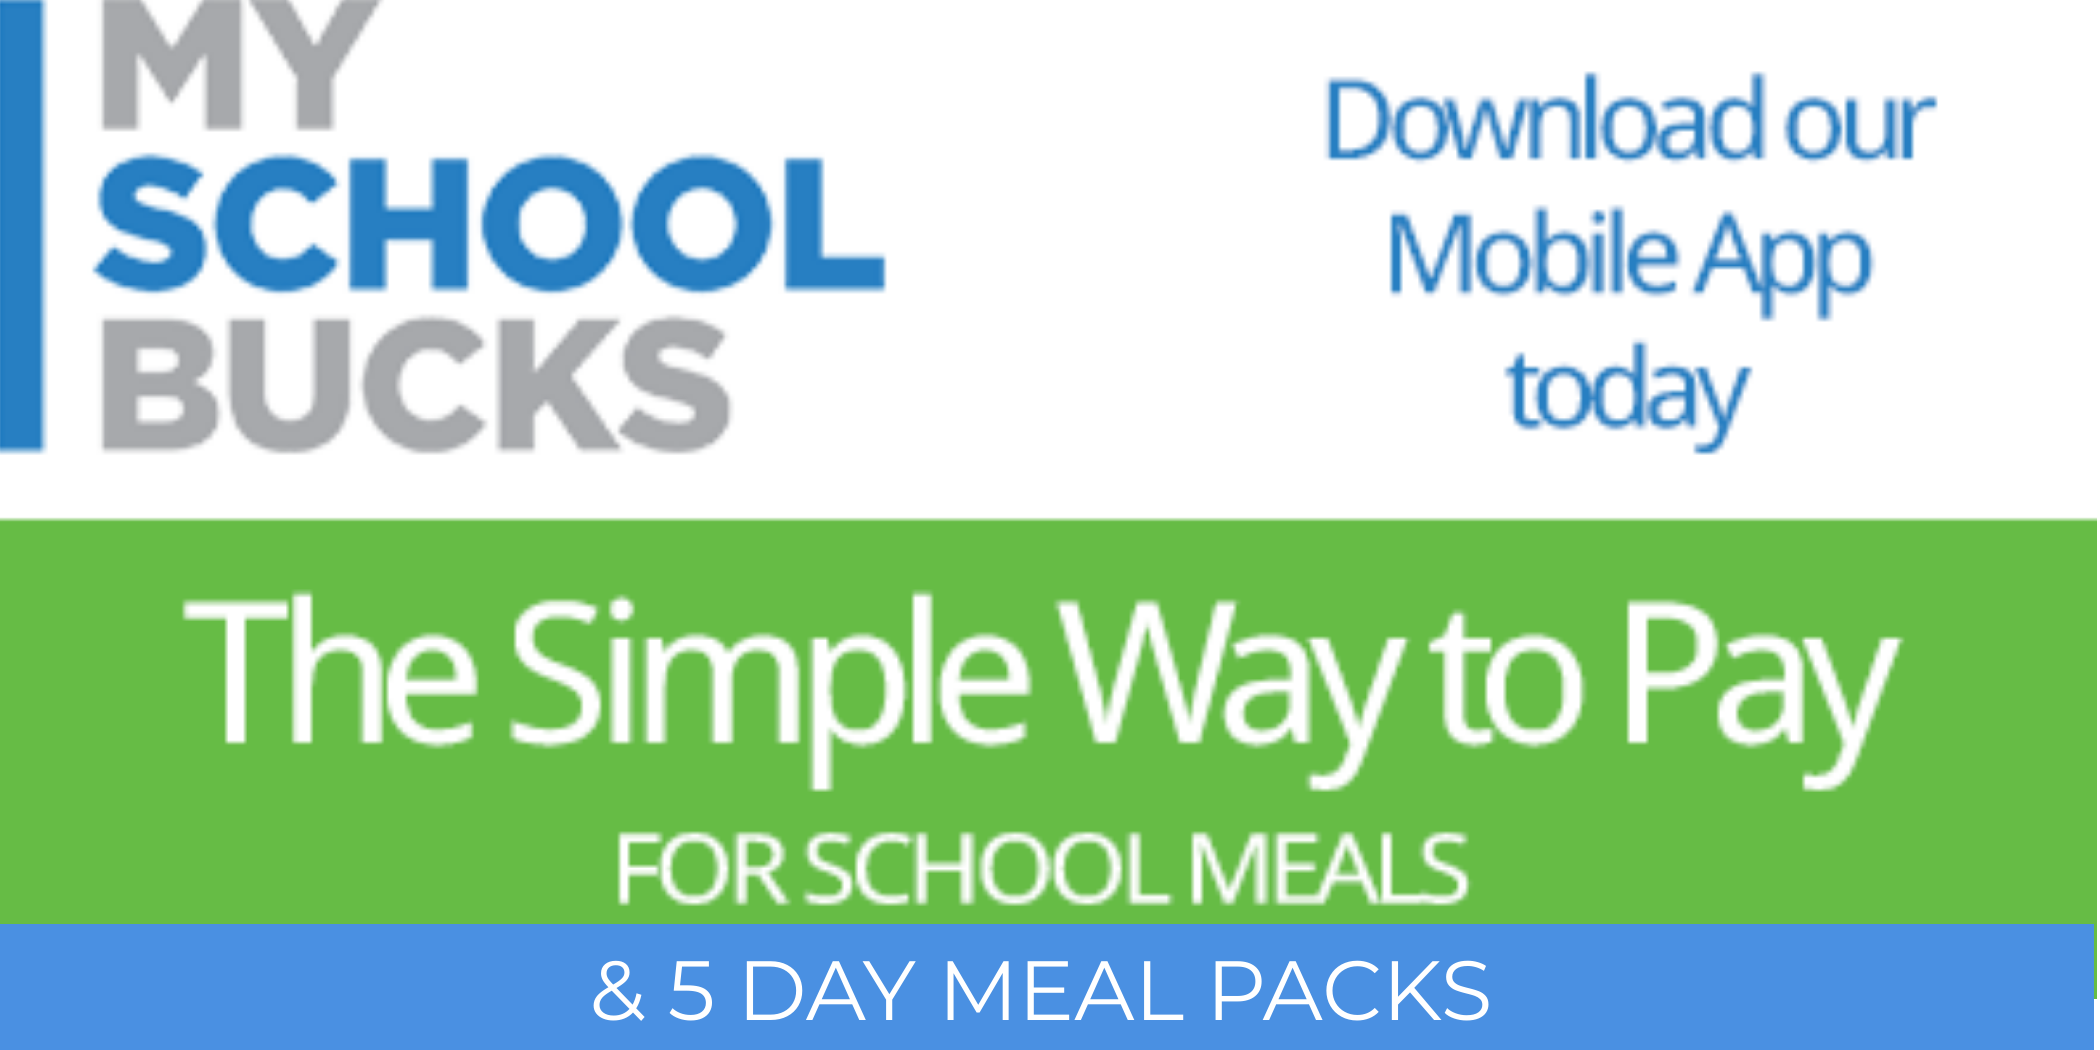 My School Bucks - Download the App For School Meal Paymetns and 5 Day Meal Pack Payments